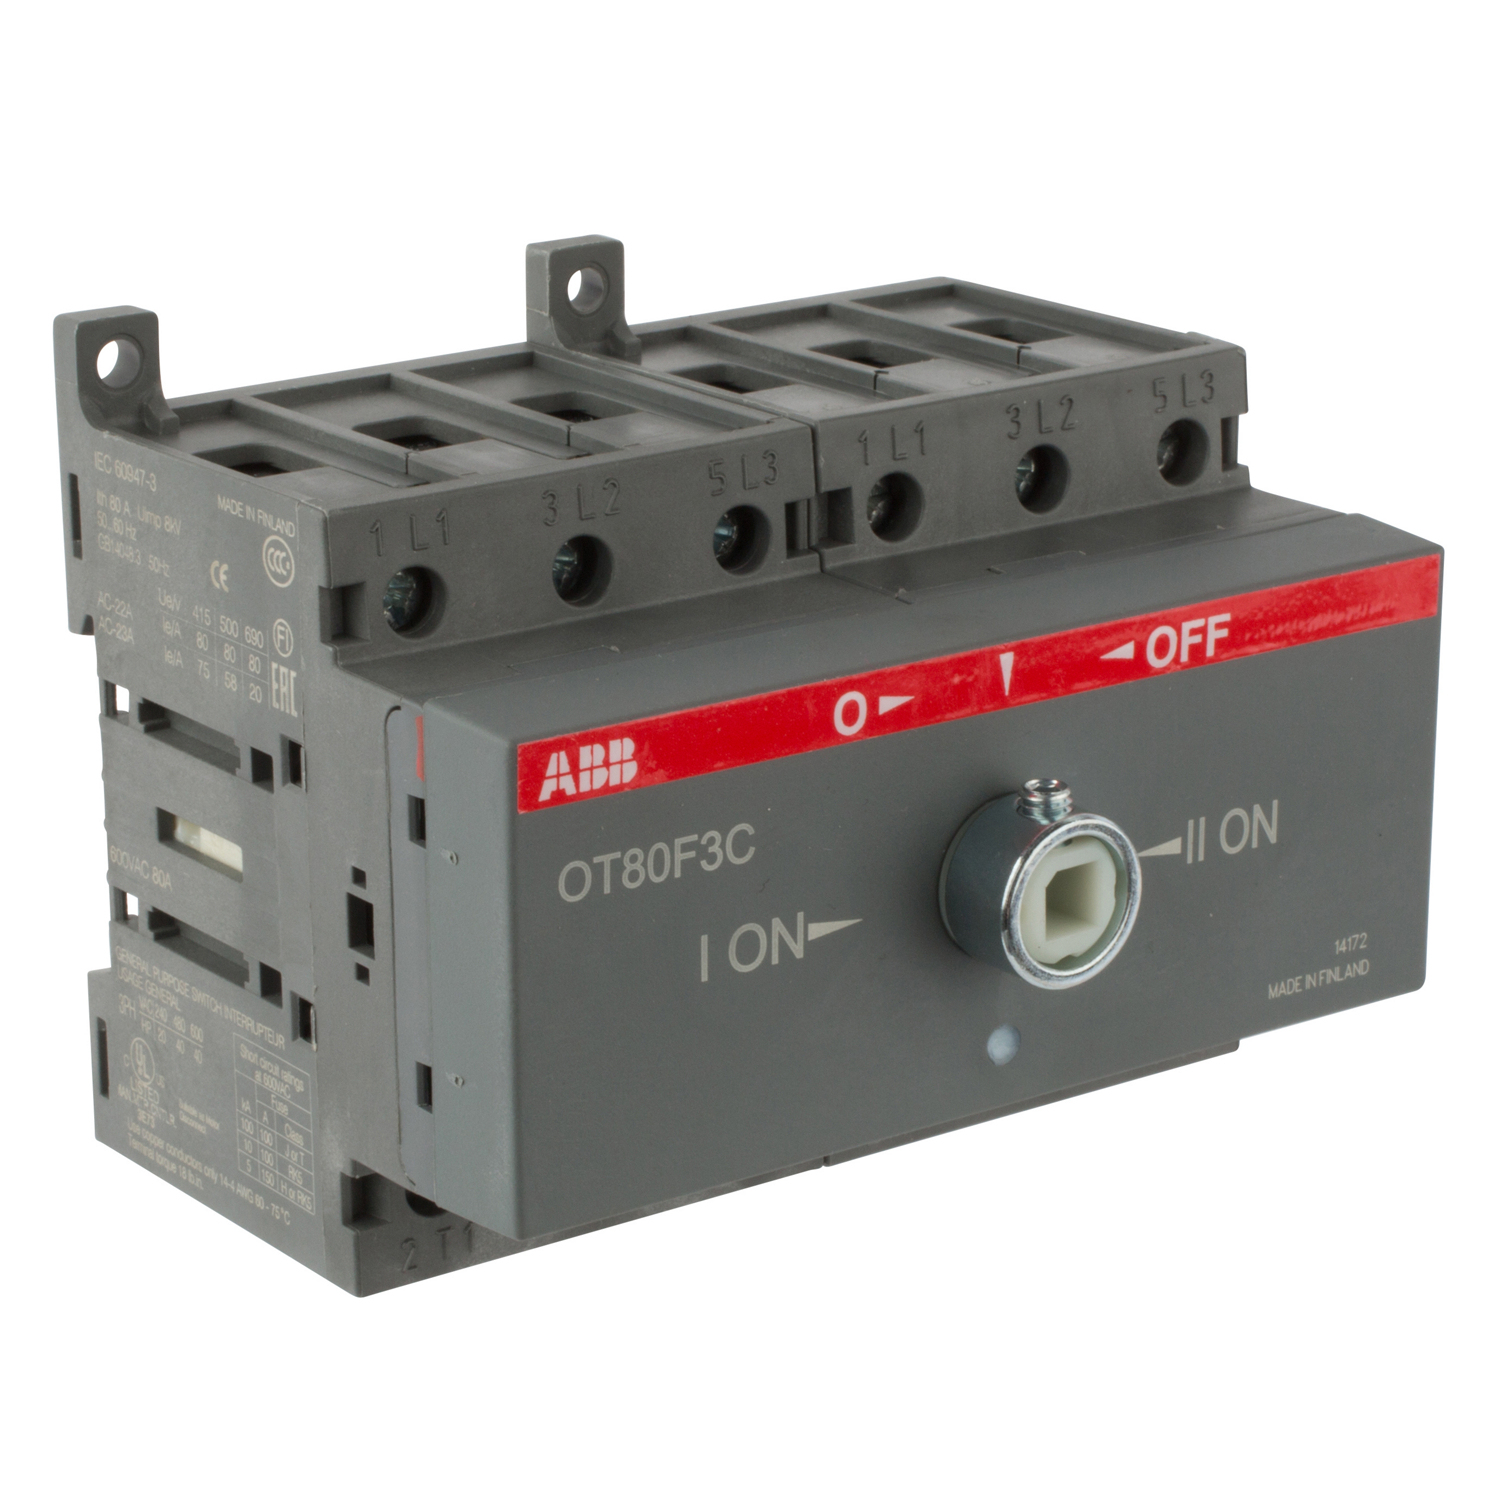 Product Listing Standard Electric Supply For 92 Abb Solid State Overload Relay Disconnect Switch Double Throw Front Operated Manual Non Fusible Series Ot80f3c